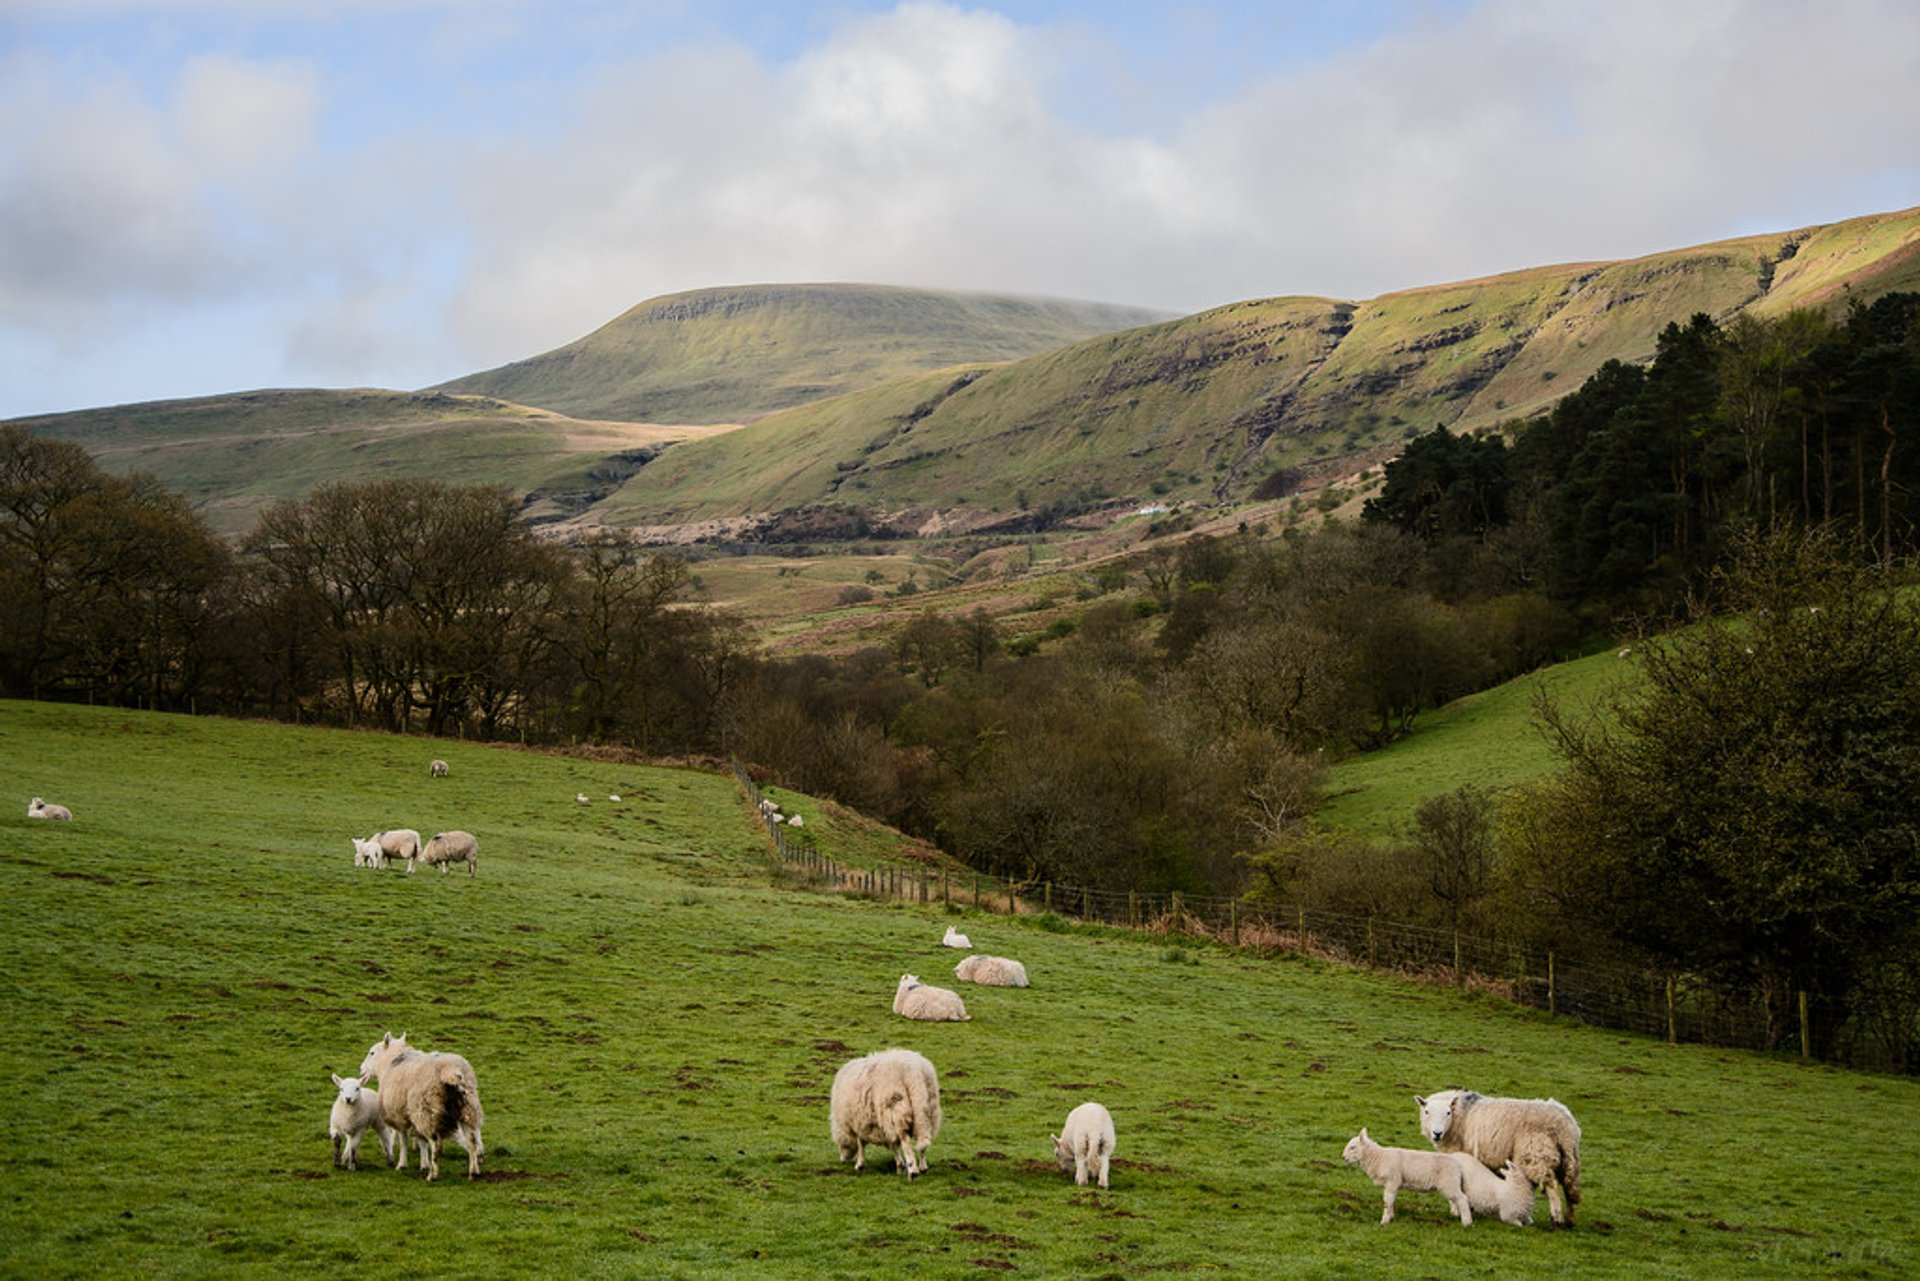 Best time for Sheep Trekking in the Brecon Beacons in Wales 2020